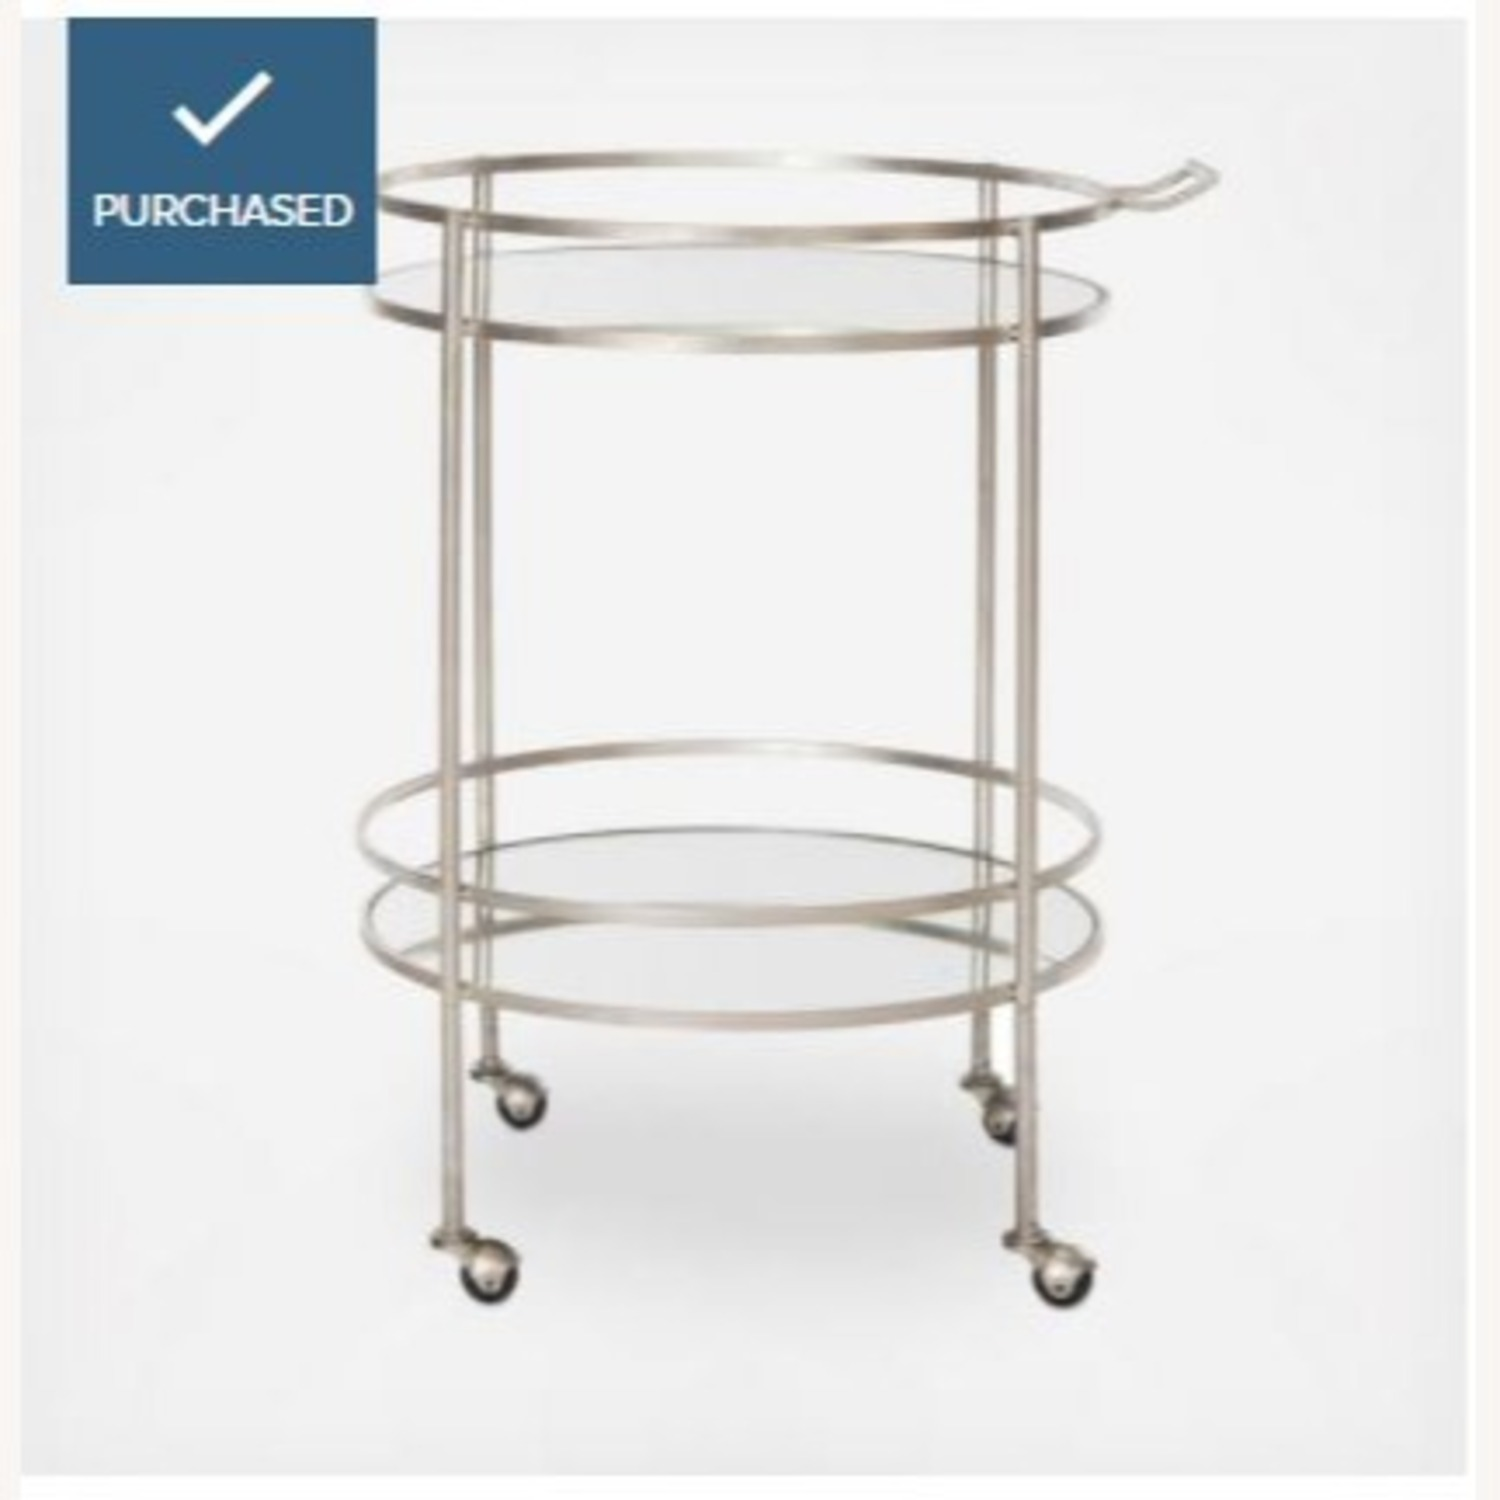 Safavieh Two Tier Bar Cart Gold and Mirror - image-1